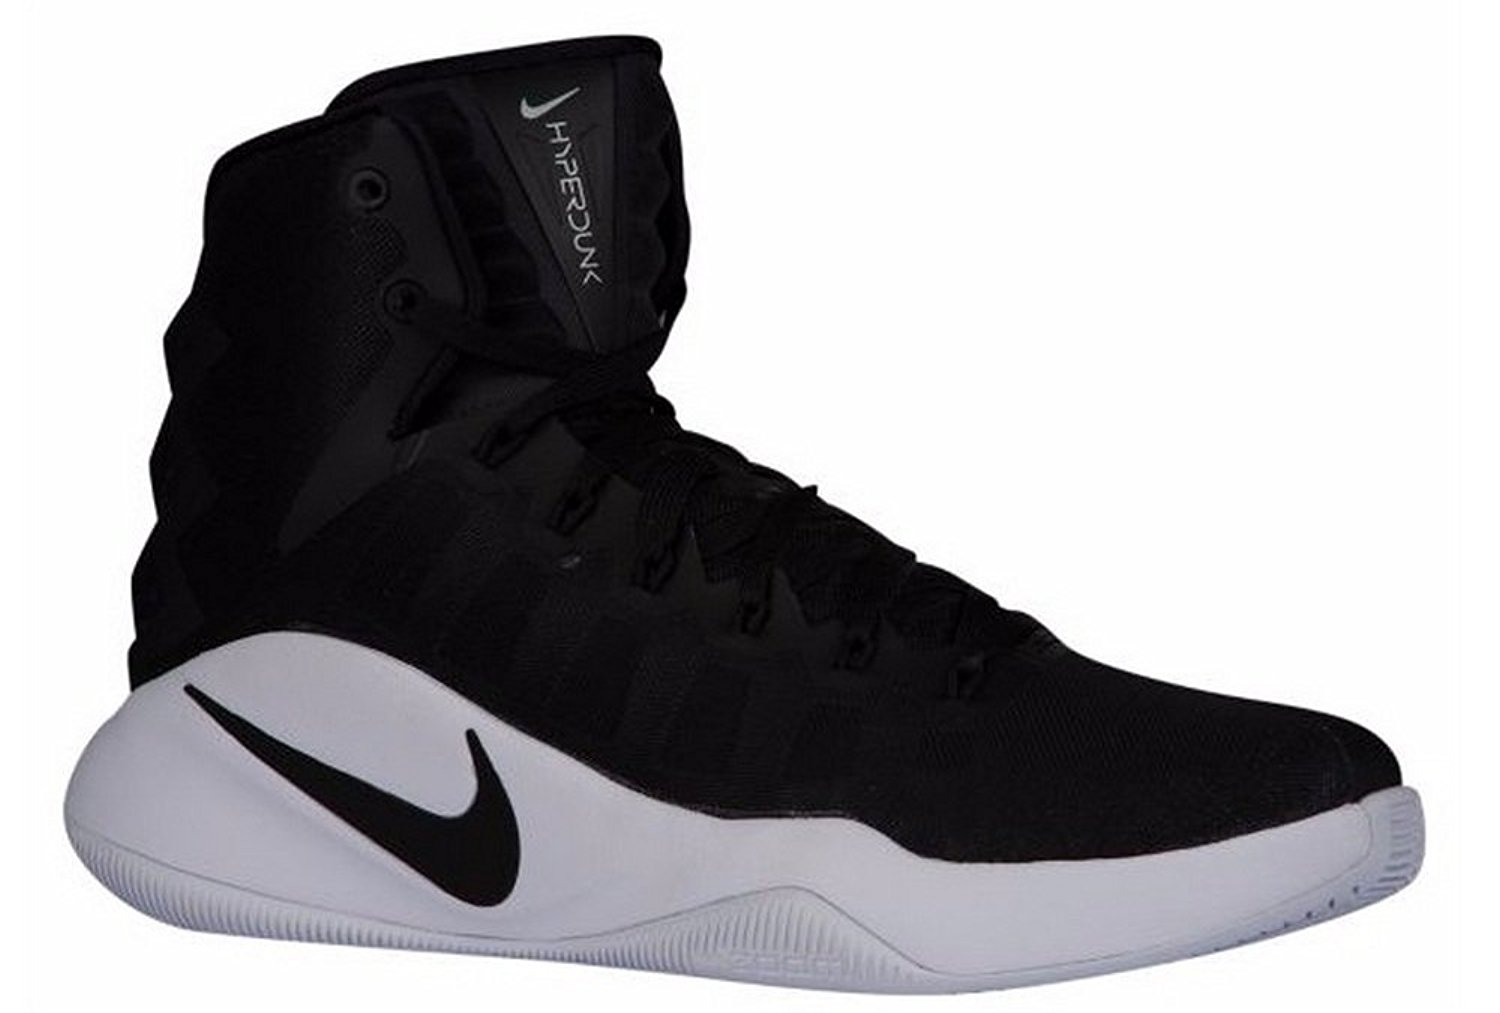 Nike Men s Hyperdunk 2016 TB Basketball Shoes 844368 001 Black Size 13.5 87d38b36a